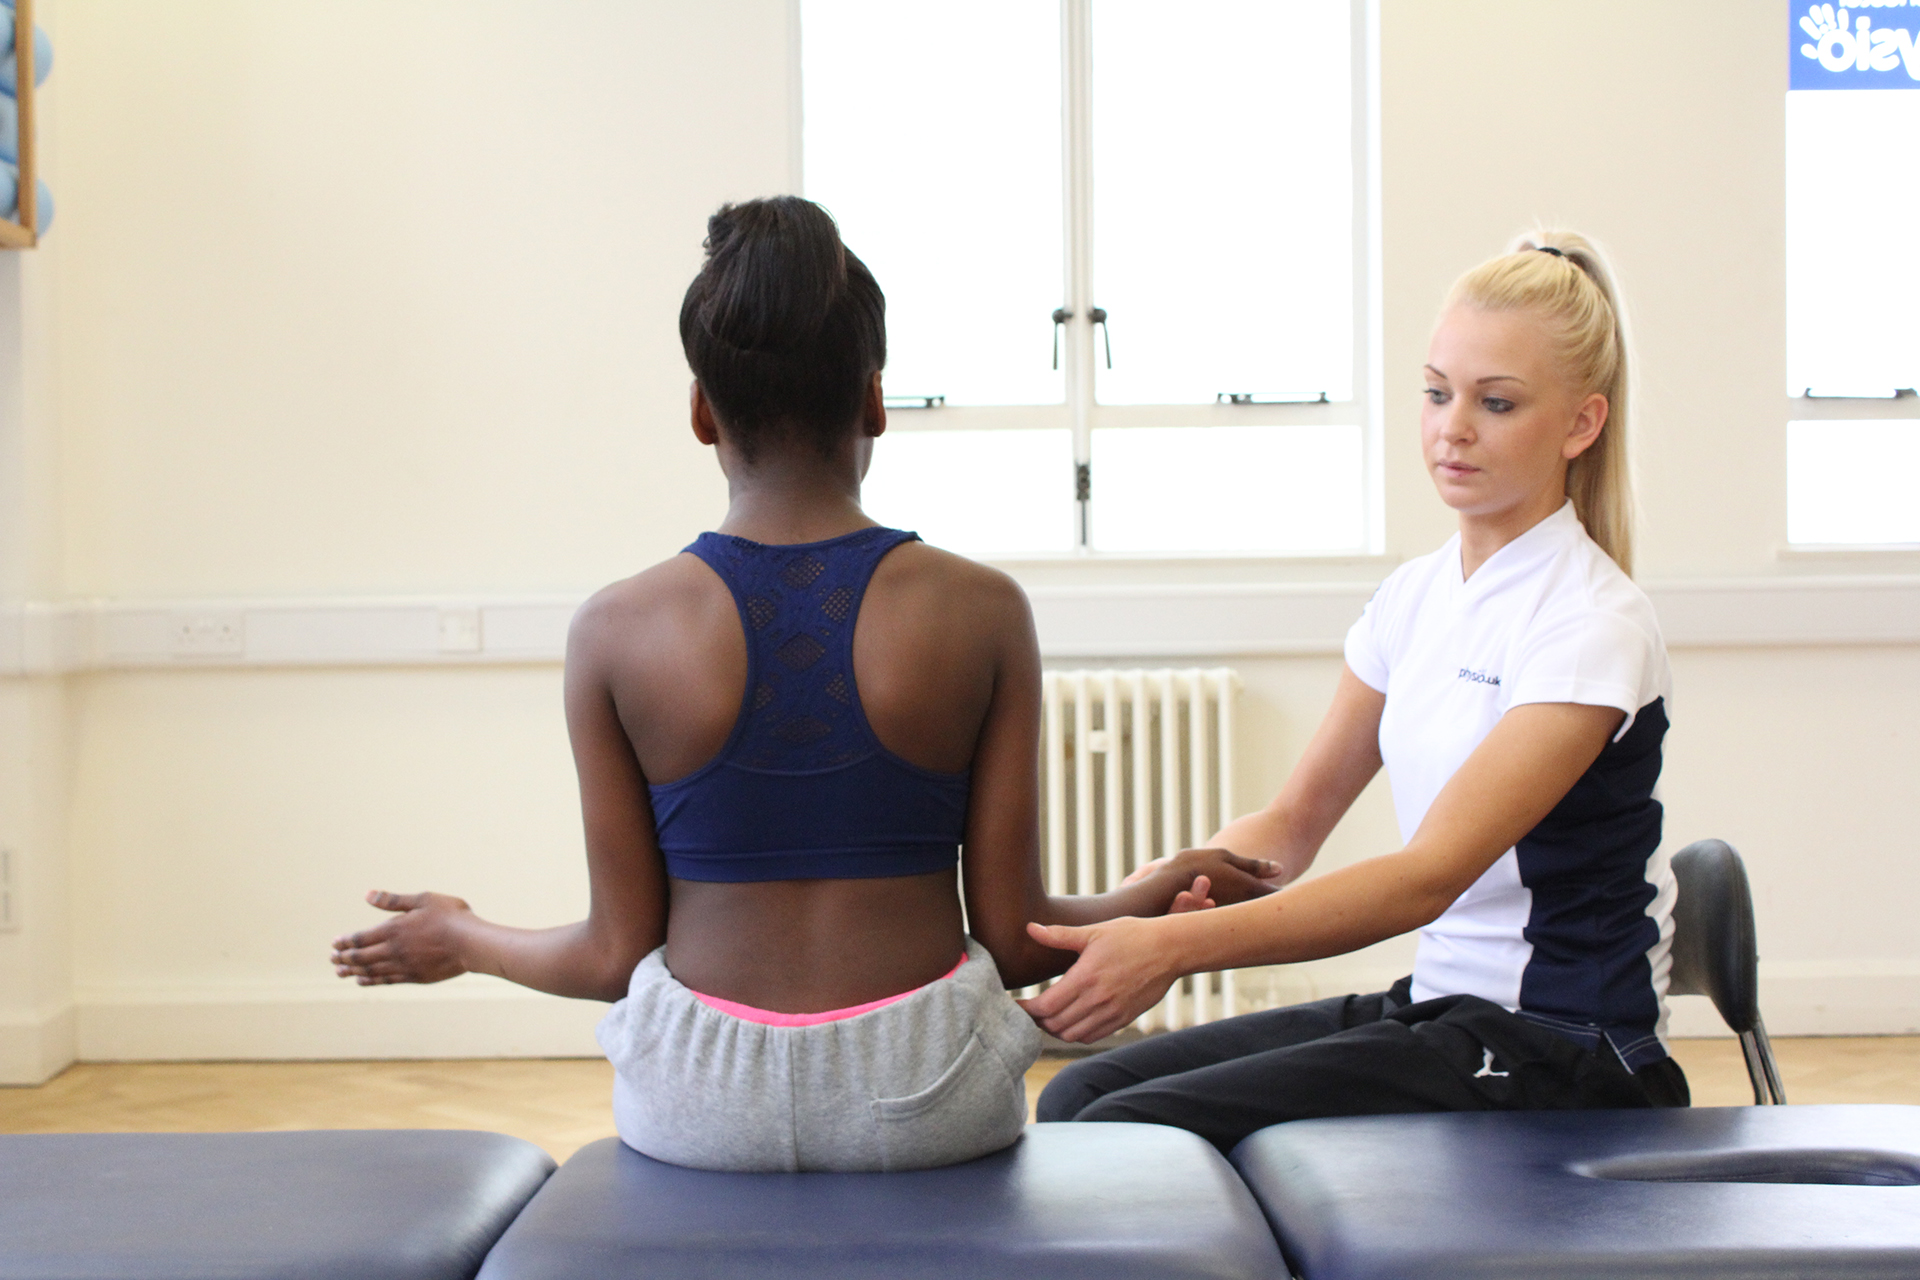 Physiotherapy treatment for Growing Pains